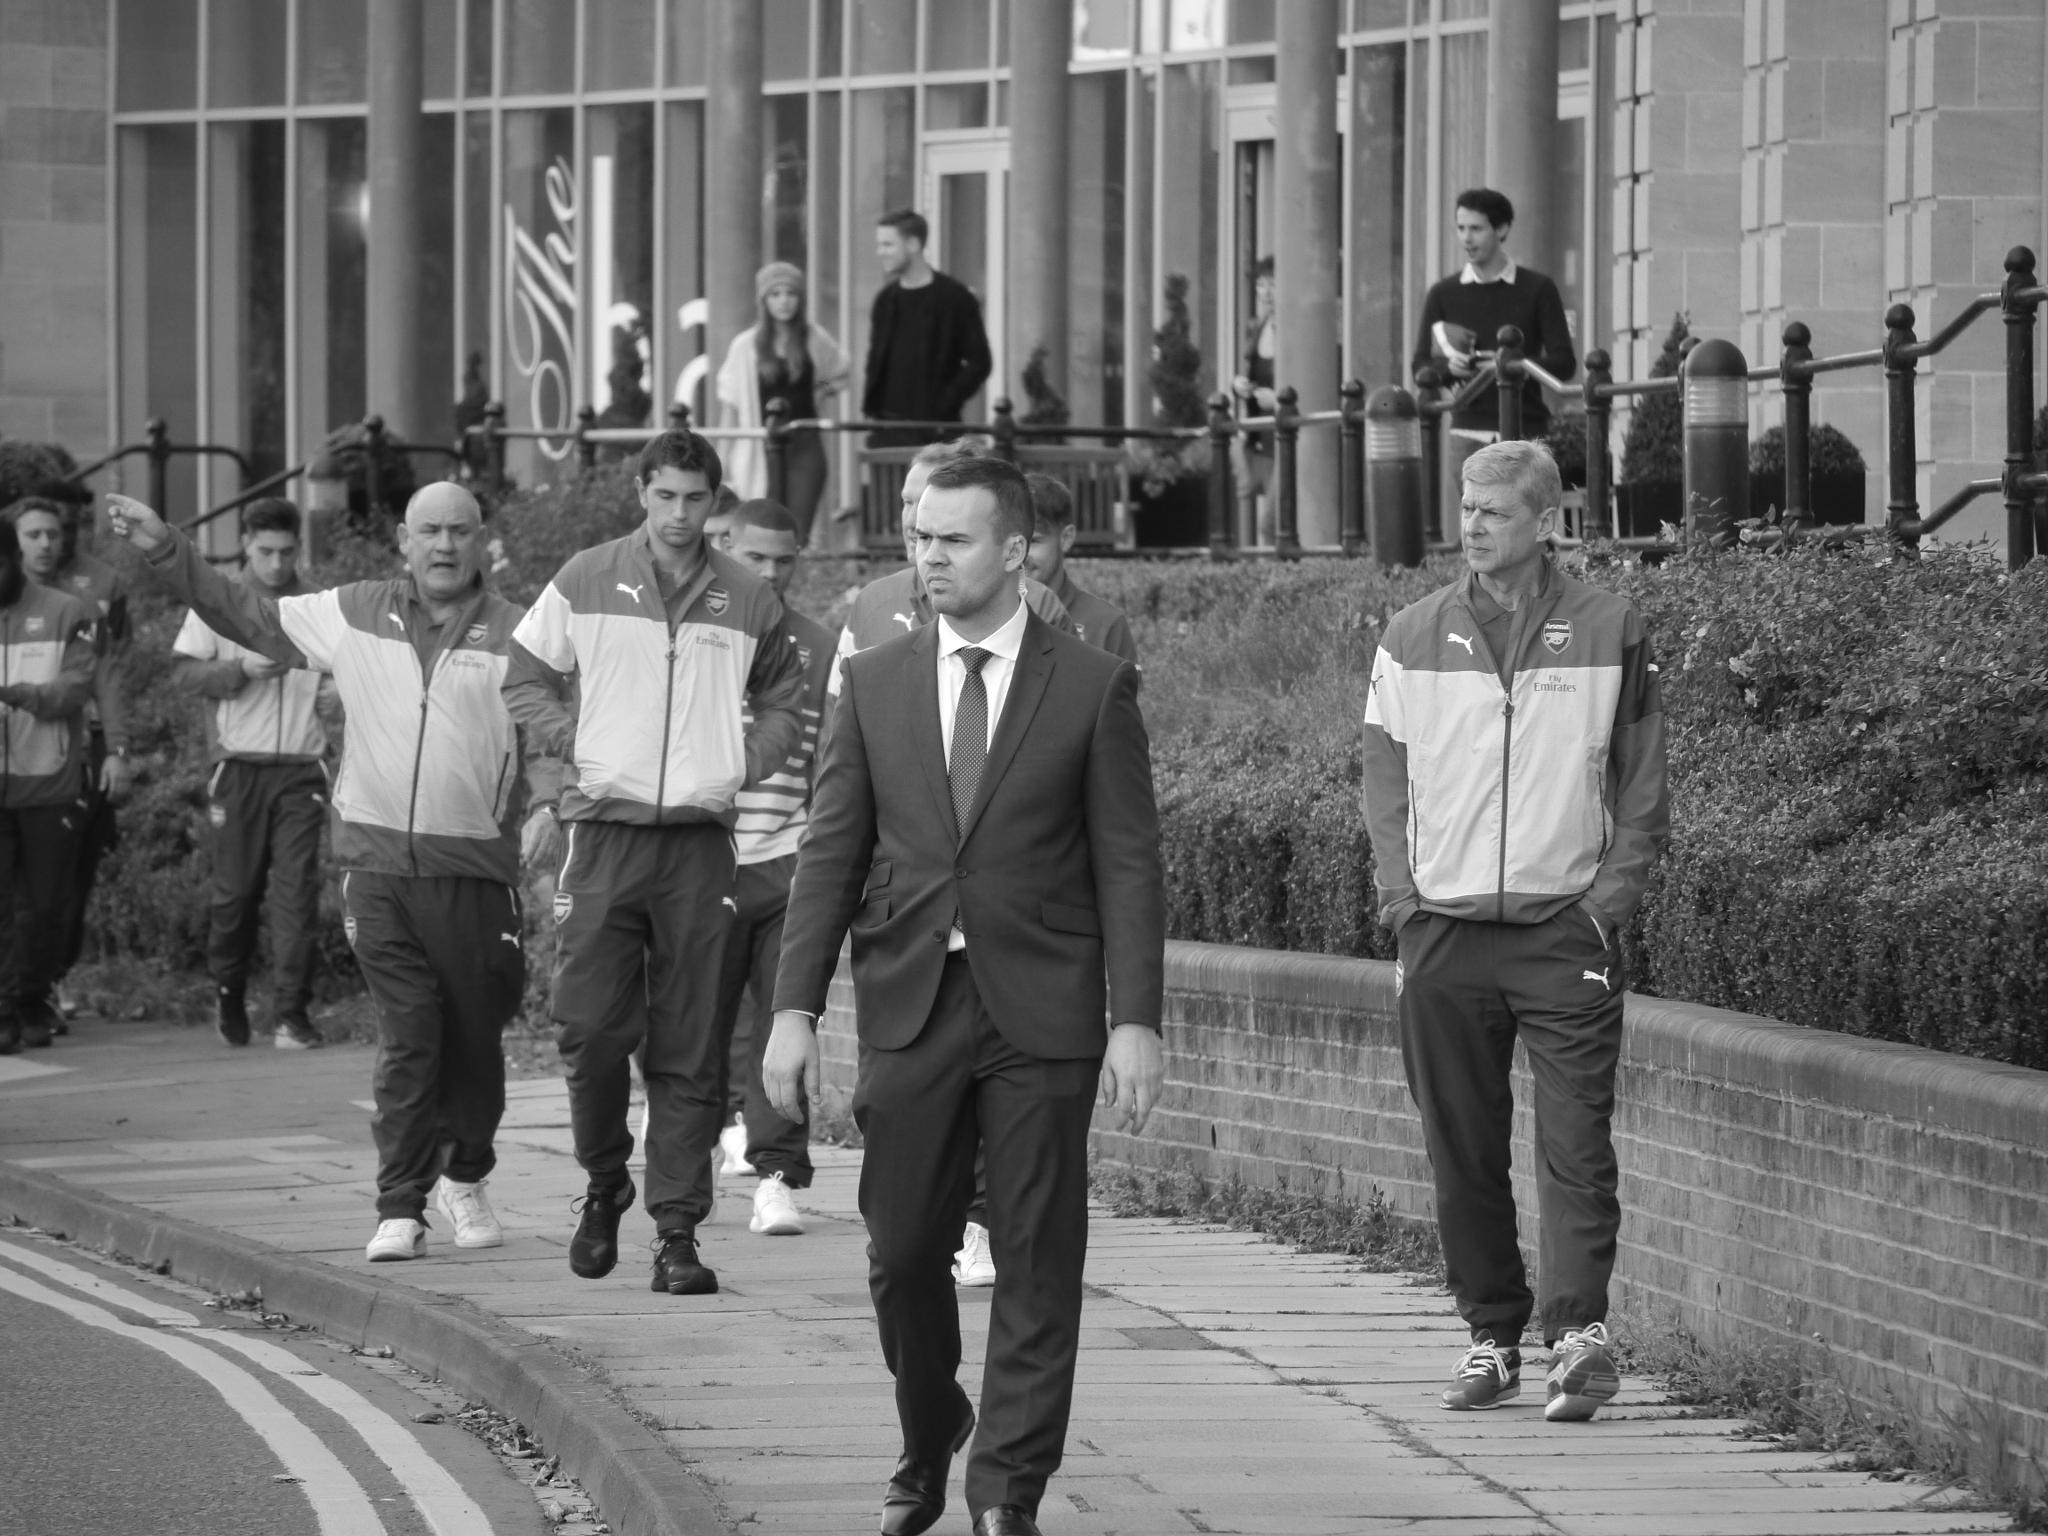 Arsenal FC about to go on a team walk at Durham this morning. by Darren Turner